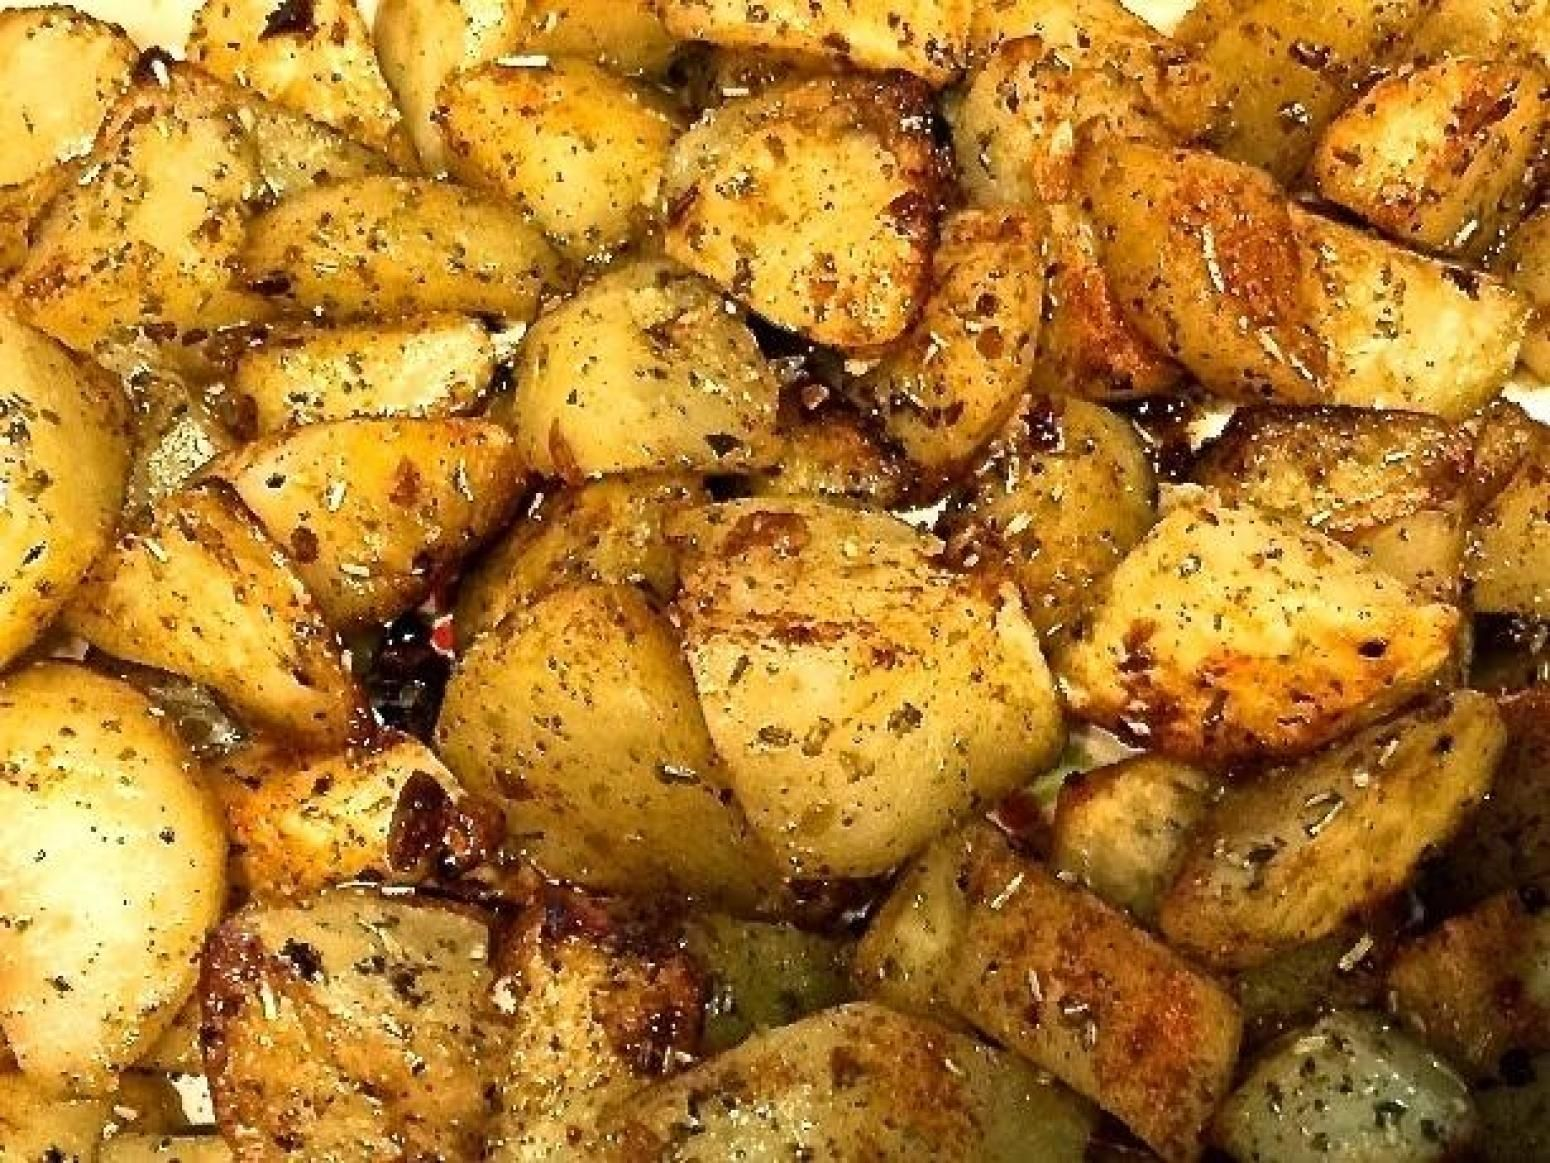 Classic Oven Roasted Potatoes with Garlic and Rosemary #russetpotatorecipes